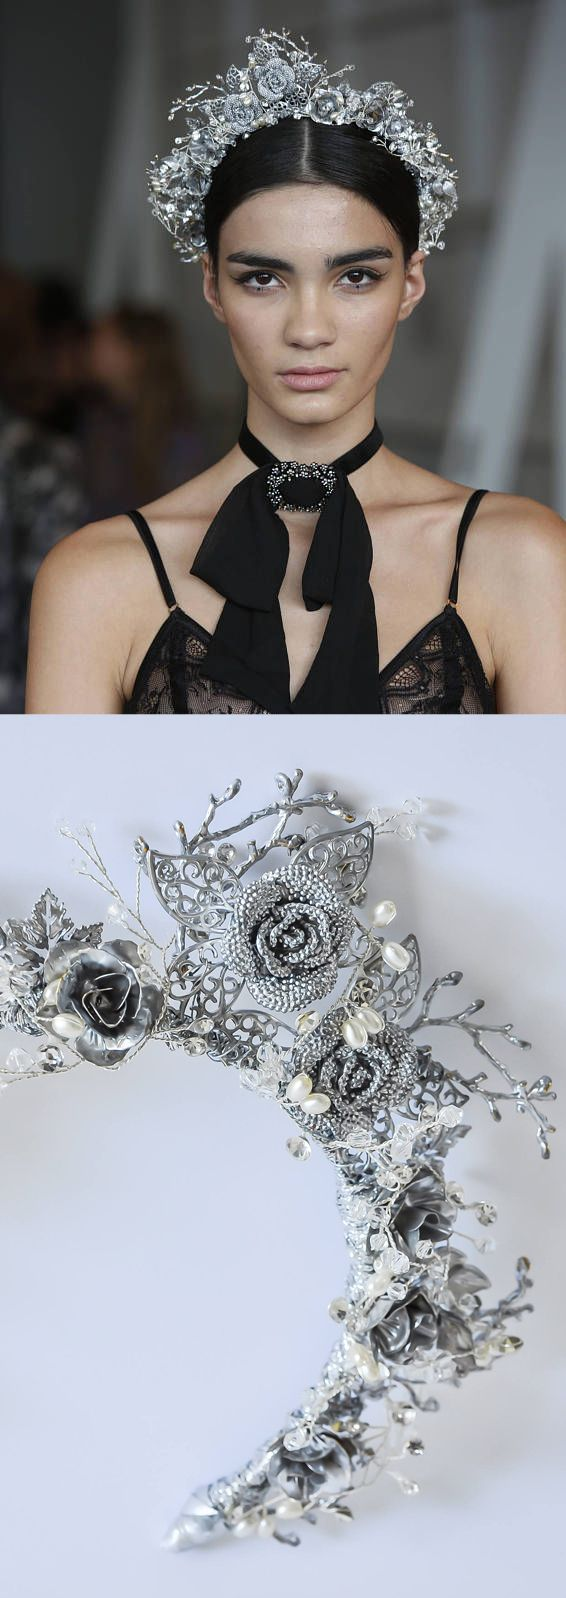 This beautifully complex crown features silver roses and crystal details, and is a superb choice for the modern-day bride, or racing fashion fashions on the field contestants. Handmade by Ashlee Lauren in South Australia. Bridal Crystal Crown, Bridal Halo Headband, Bridal Halo Crown, Crystal Hair Vine, Gold Tiara Headband, Boho Circlet. #wedding #fallwedding #winterwedding #bride #bridalwear #fashionsonthefield #millinery #bridalcrown #affiliatelink #bridalaccessories